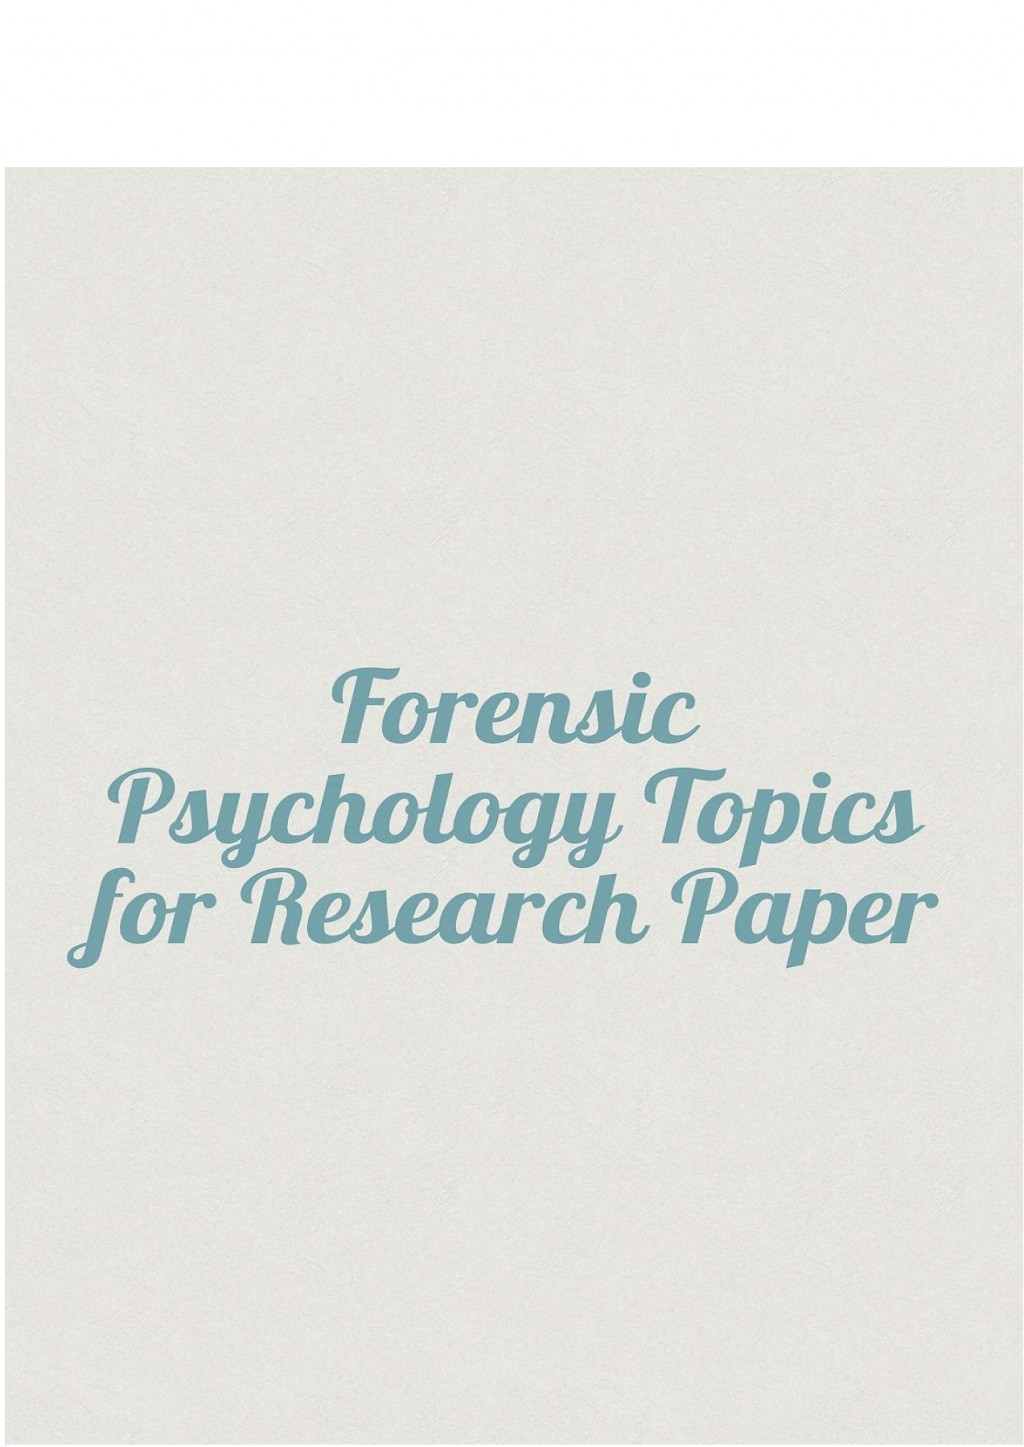 004 Forensic Psychology Topics For Research Unique Paper Large